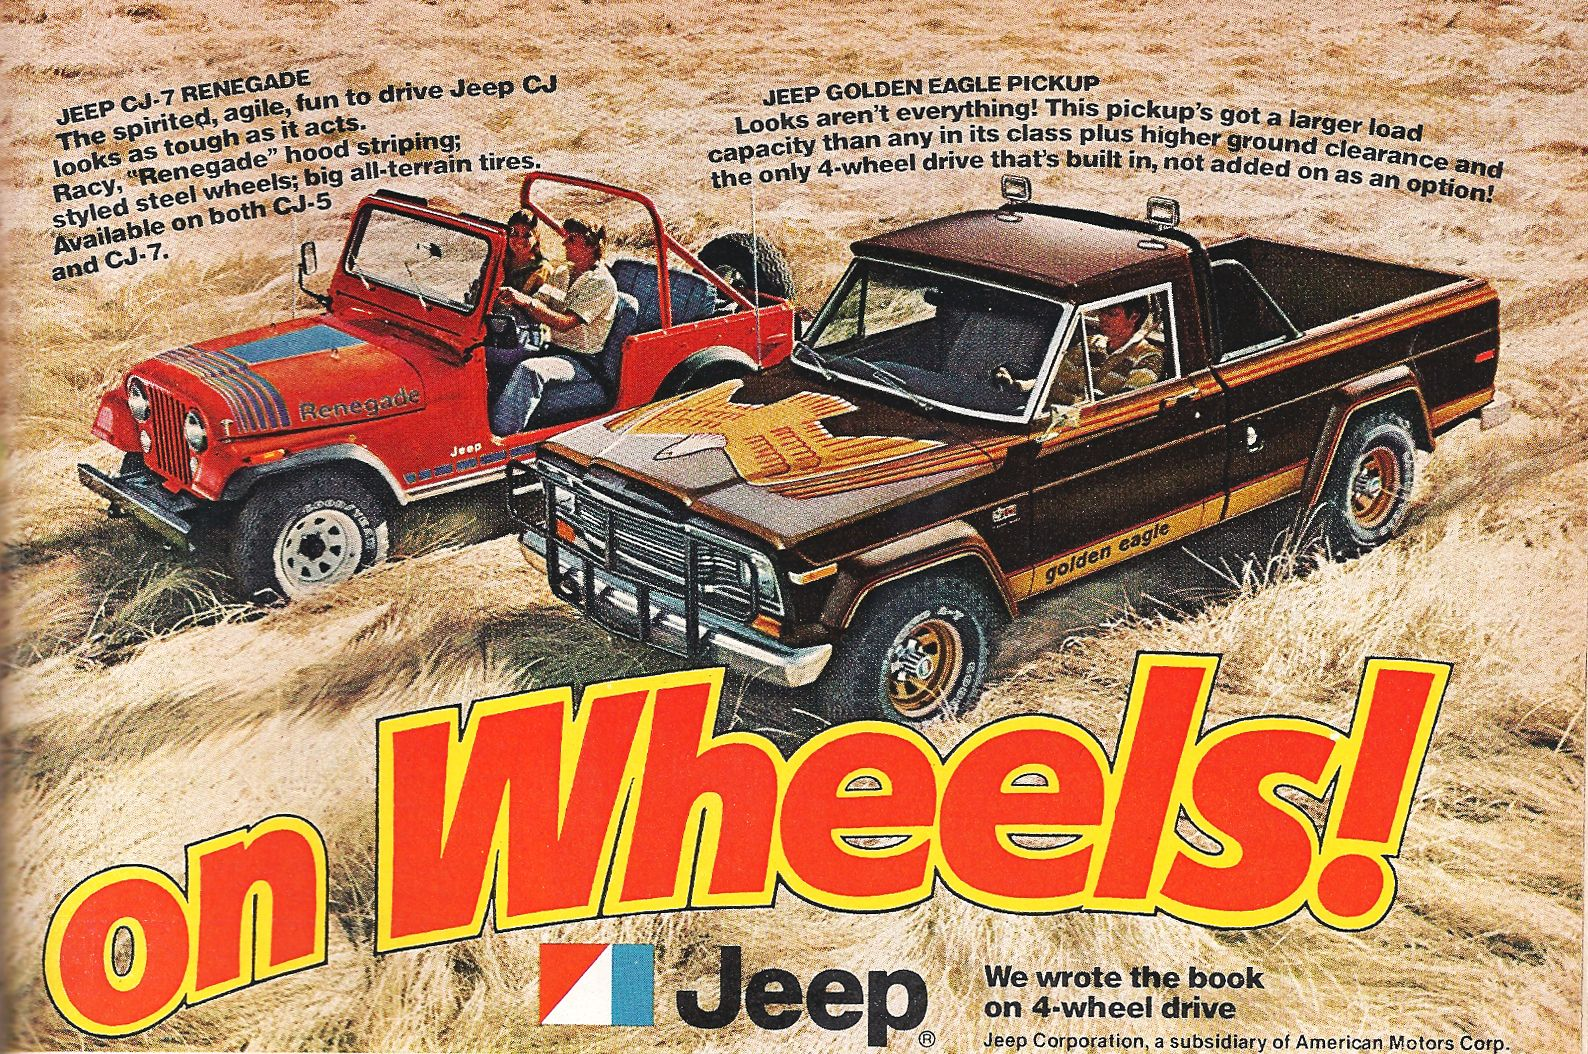 Vintage Jeep Ad Golden Eagle Pickup Vintage Jeep Jeep Renegade Jeep